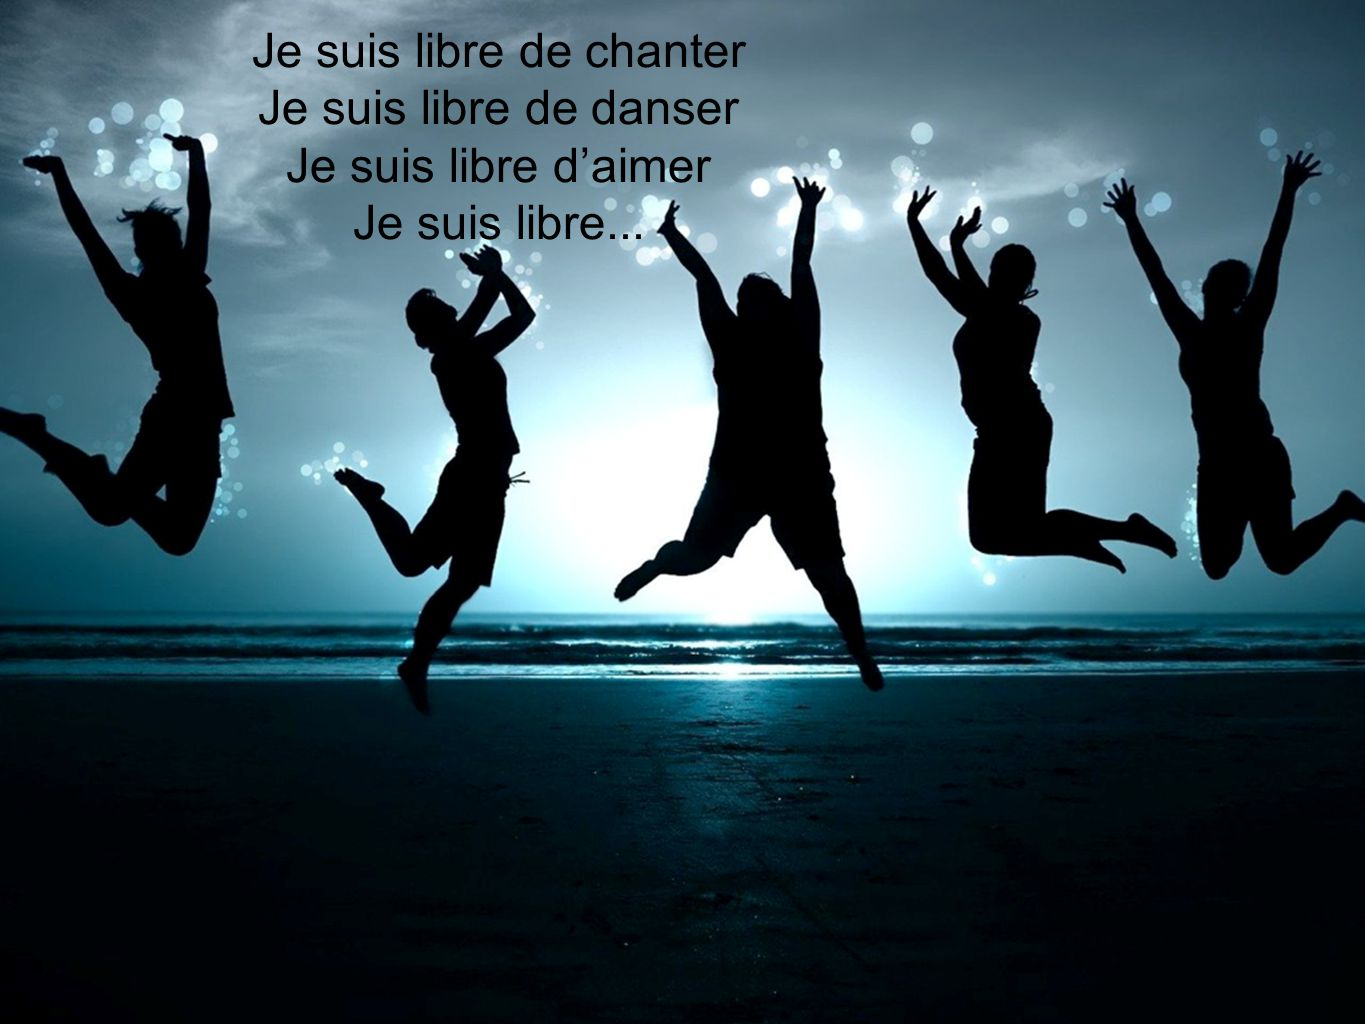 Je suis libre de chanter